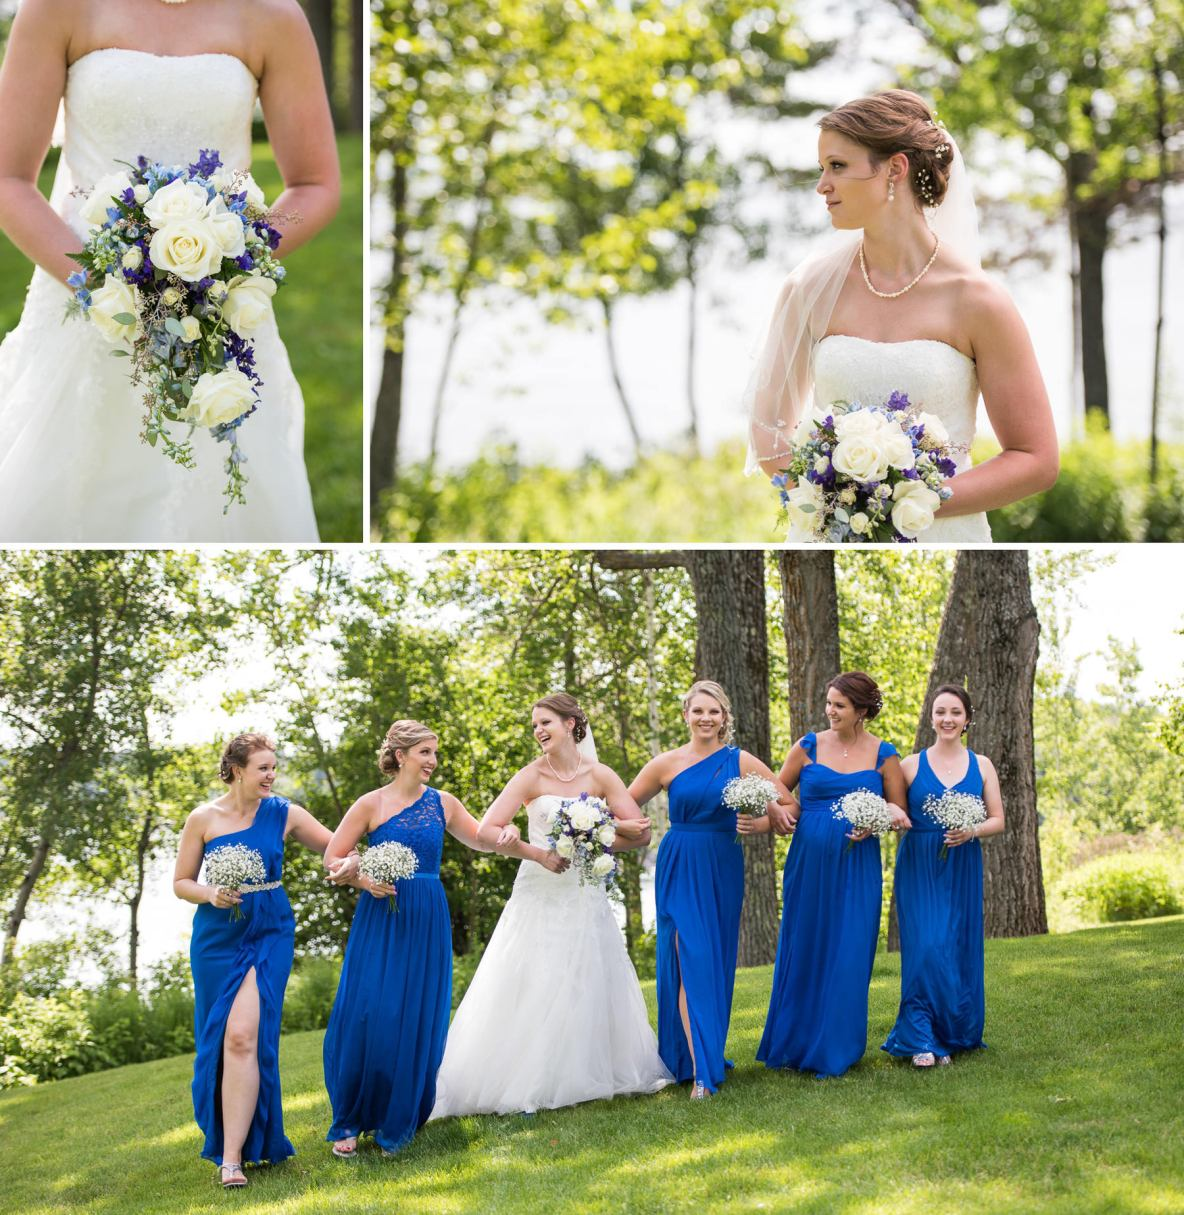 Photos of the bride and her bridesmaids in royal blue outdoors.